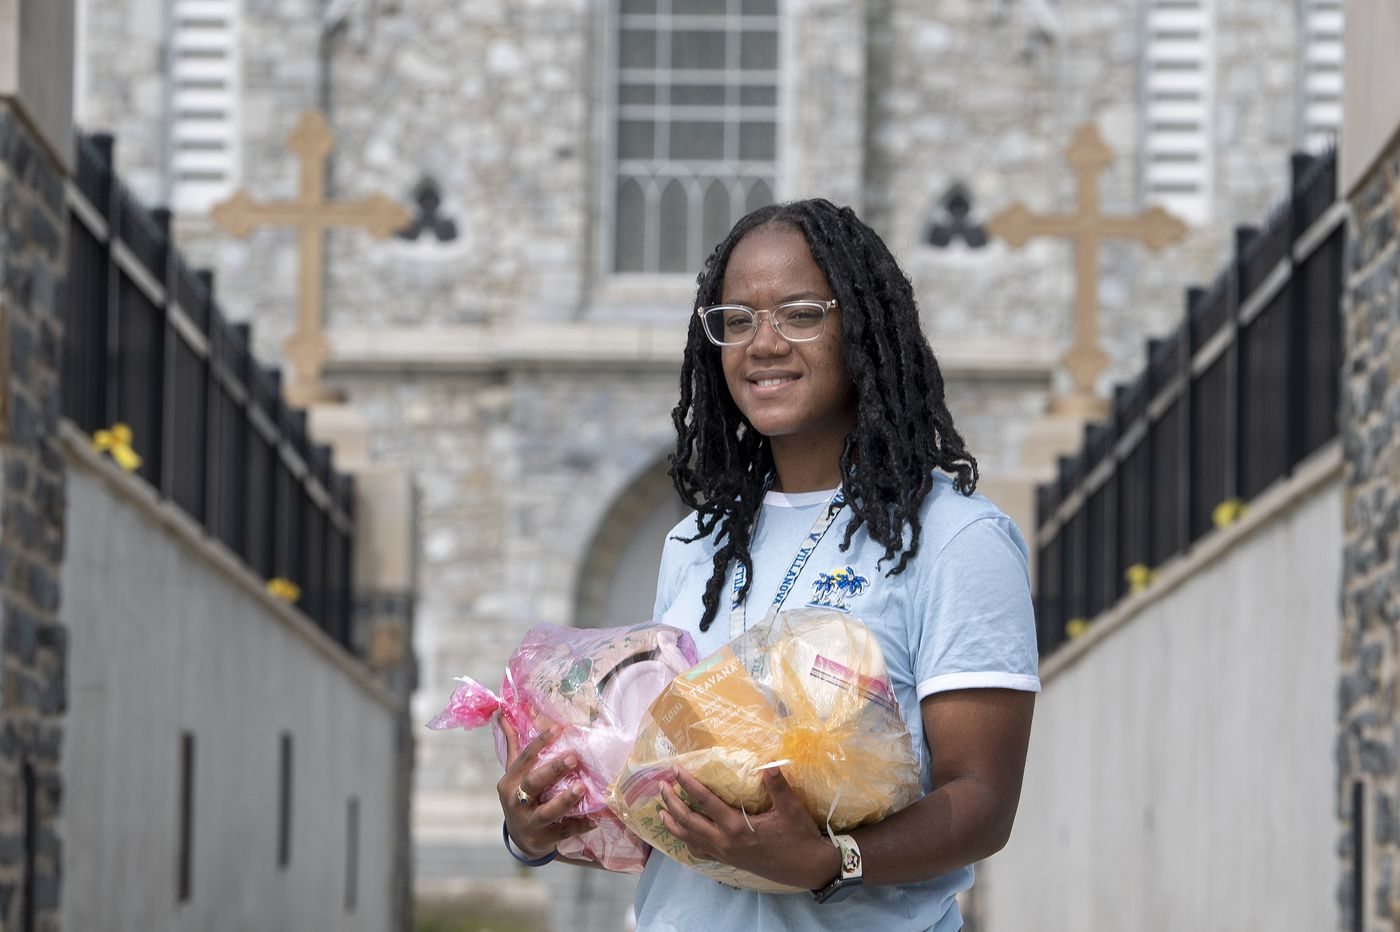 Villanova senior creates a 'prevention pantry' to keep students safe in the pandemic